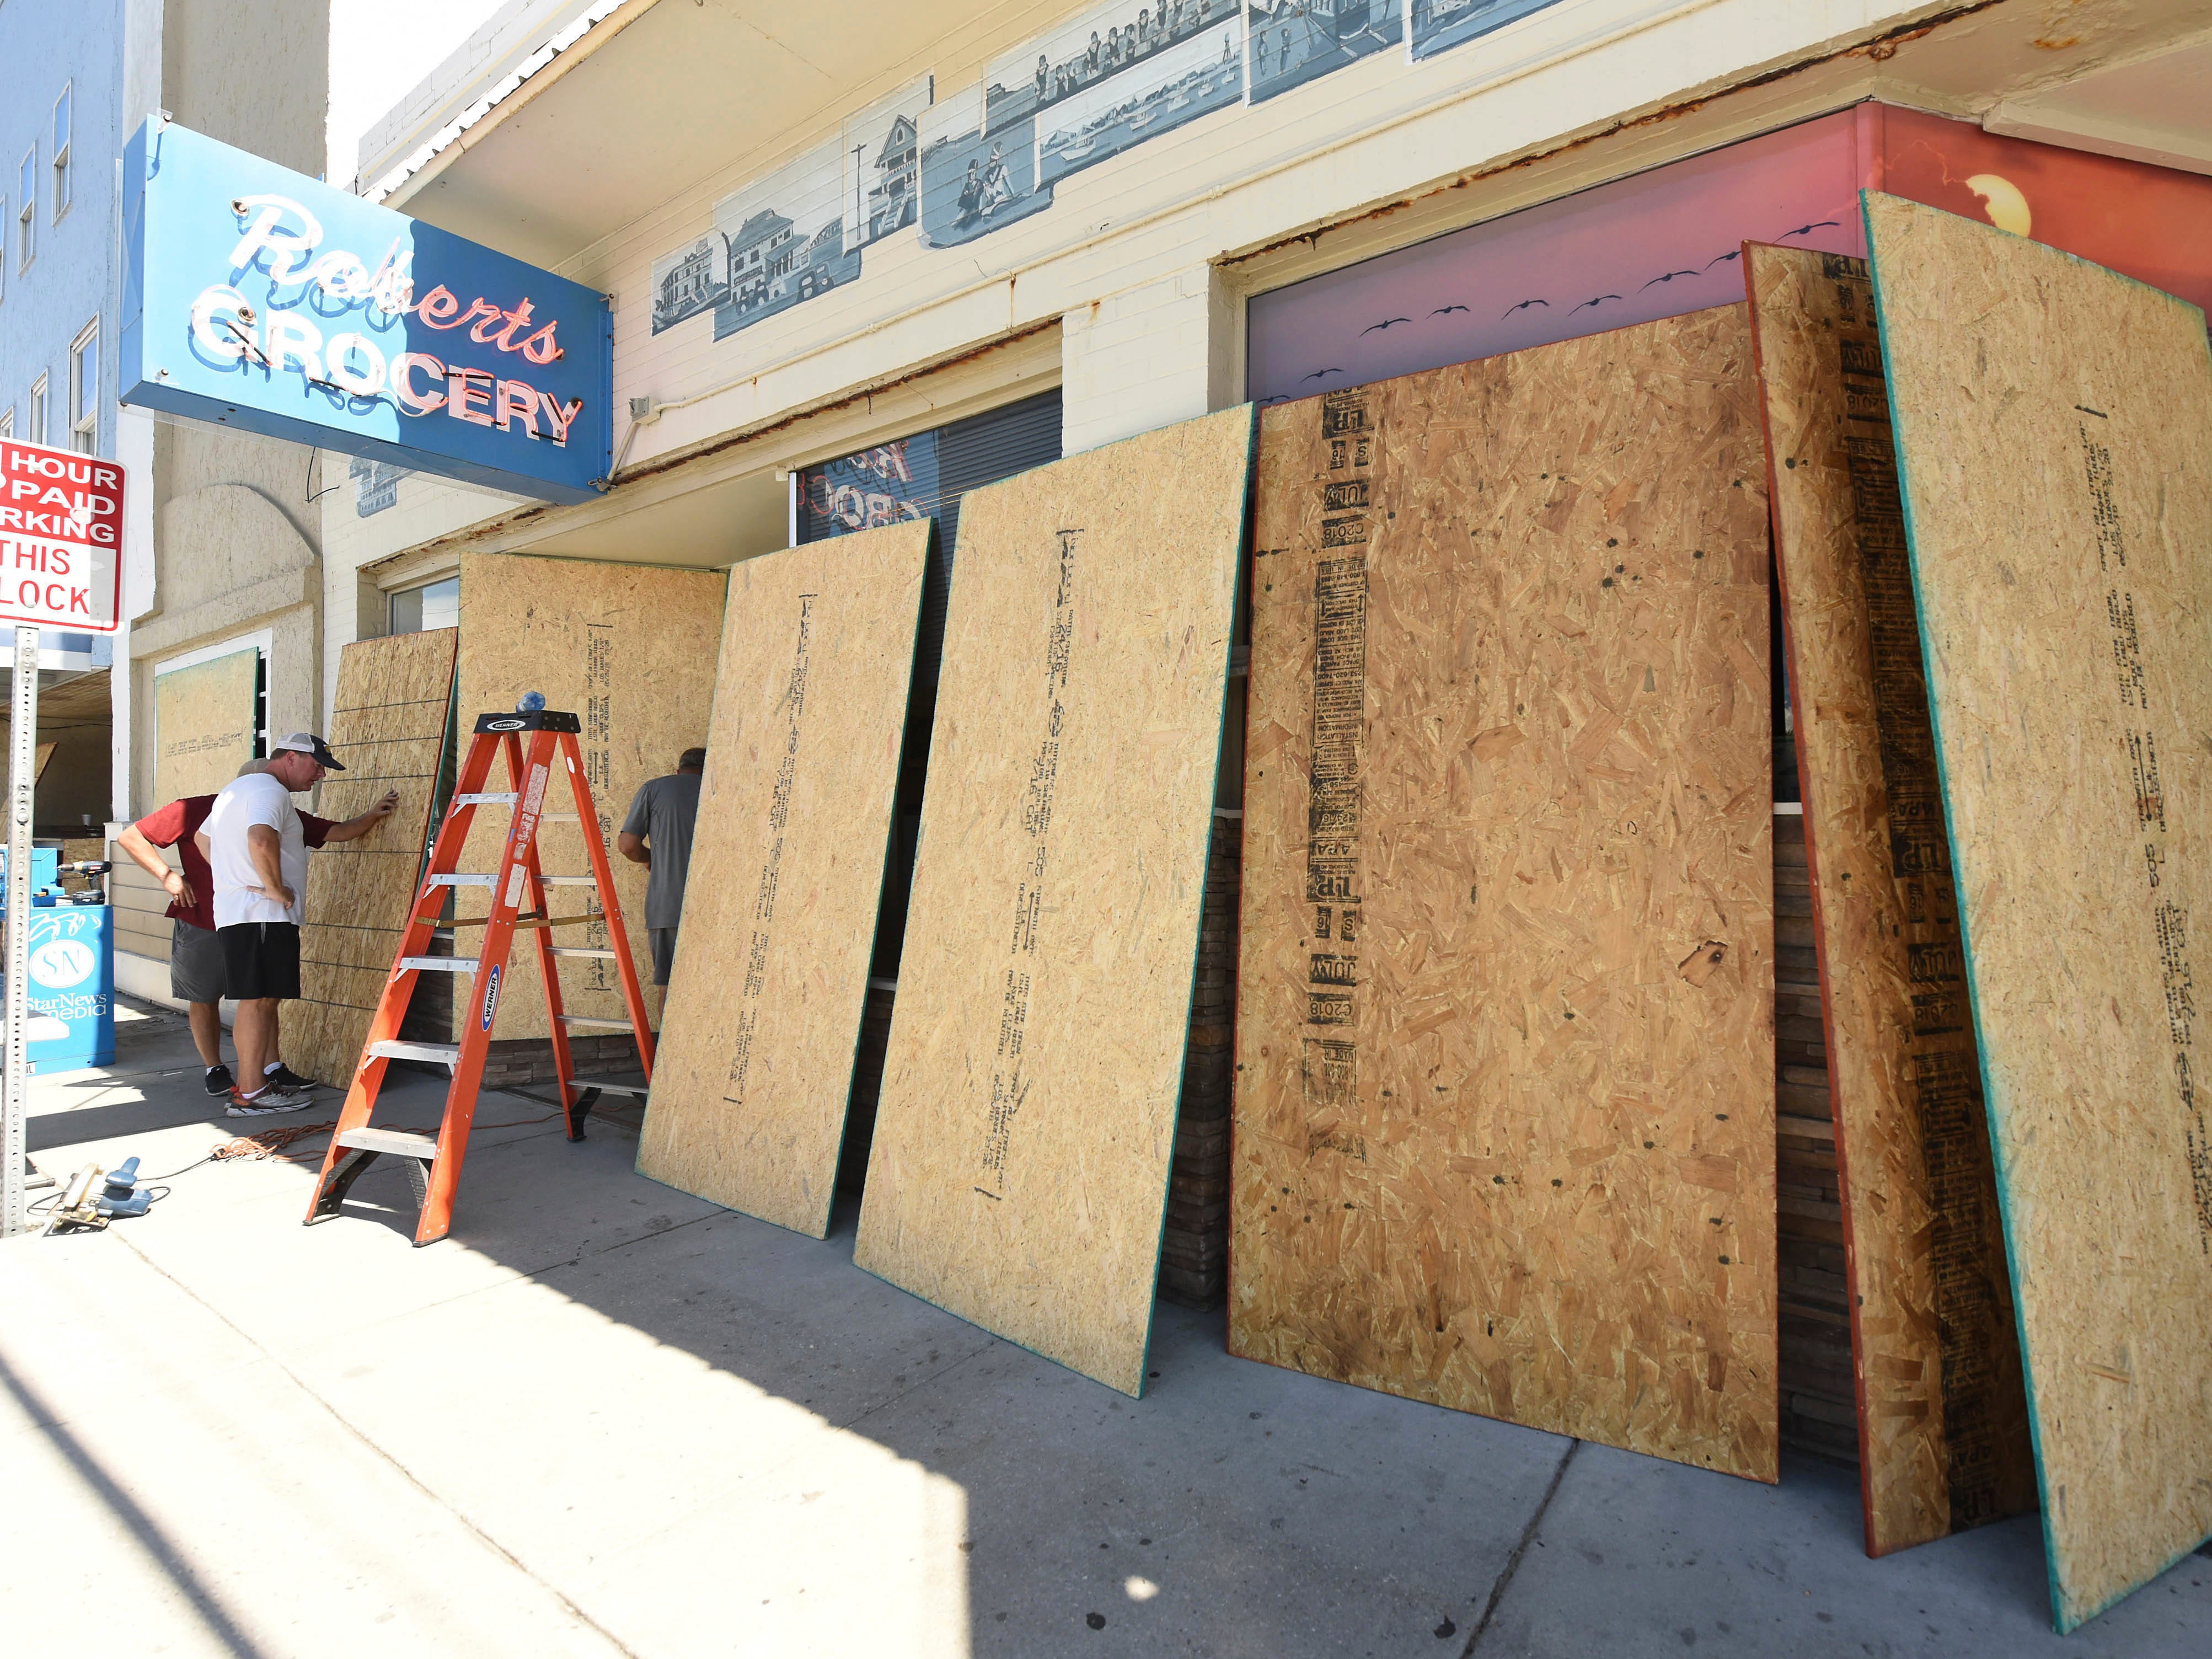 Roberts Grocery Store in Wrightsville Beach, N.C. boards up it's windows as they prepare for Hurricane Florence Monday, Sept. 10, 2018. Hurricane Florence now a category 3 hurricane is expected to make land fall somewhere along the North Carolina coastline towards the end of the week. (Ken Blevins /The Star-News via AP) ORG XMIT: NCWSN103